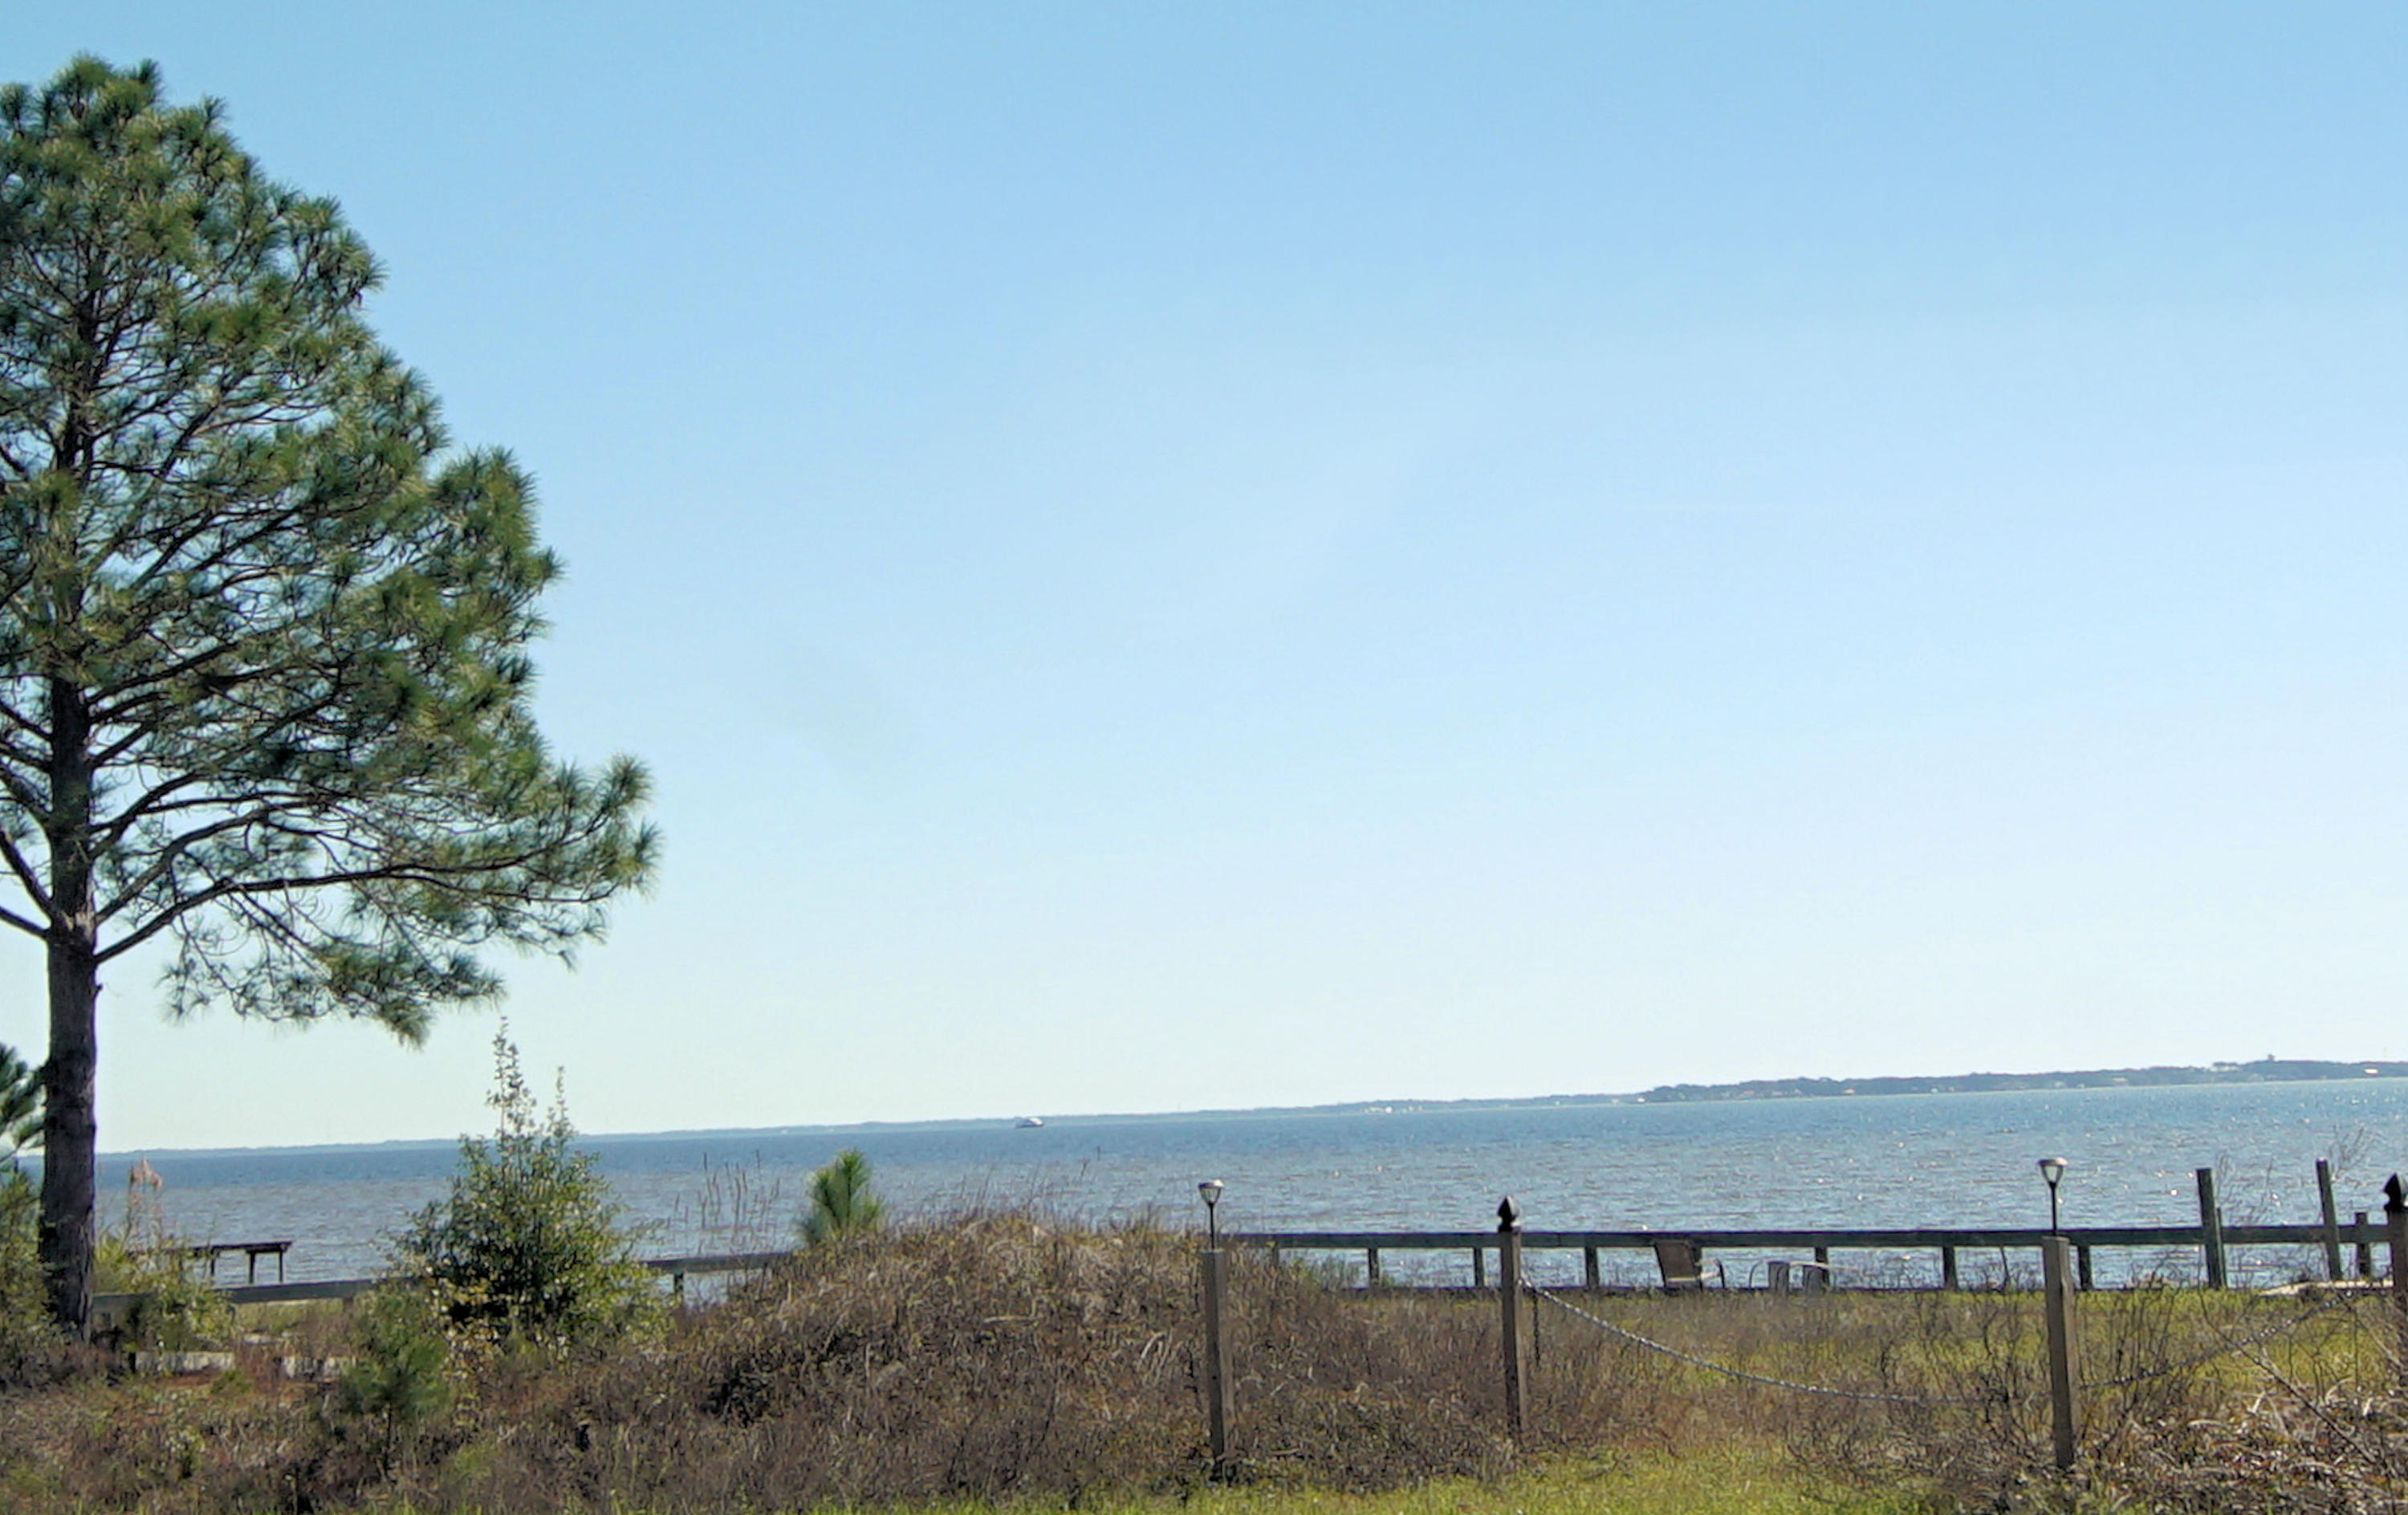 A 3 Bedroom 2 Bedroom Choctaw Beach Home